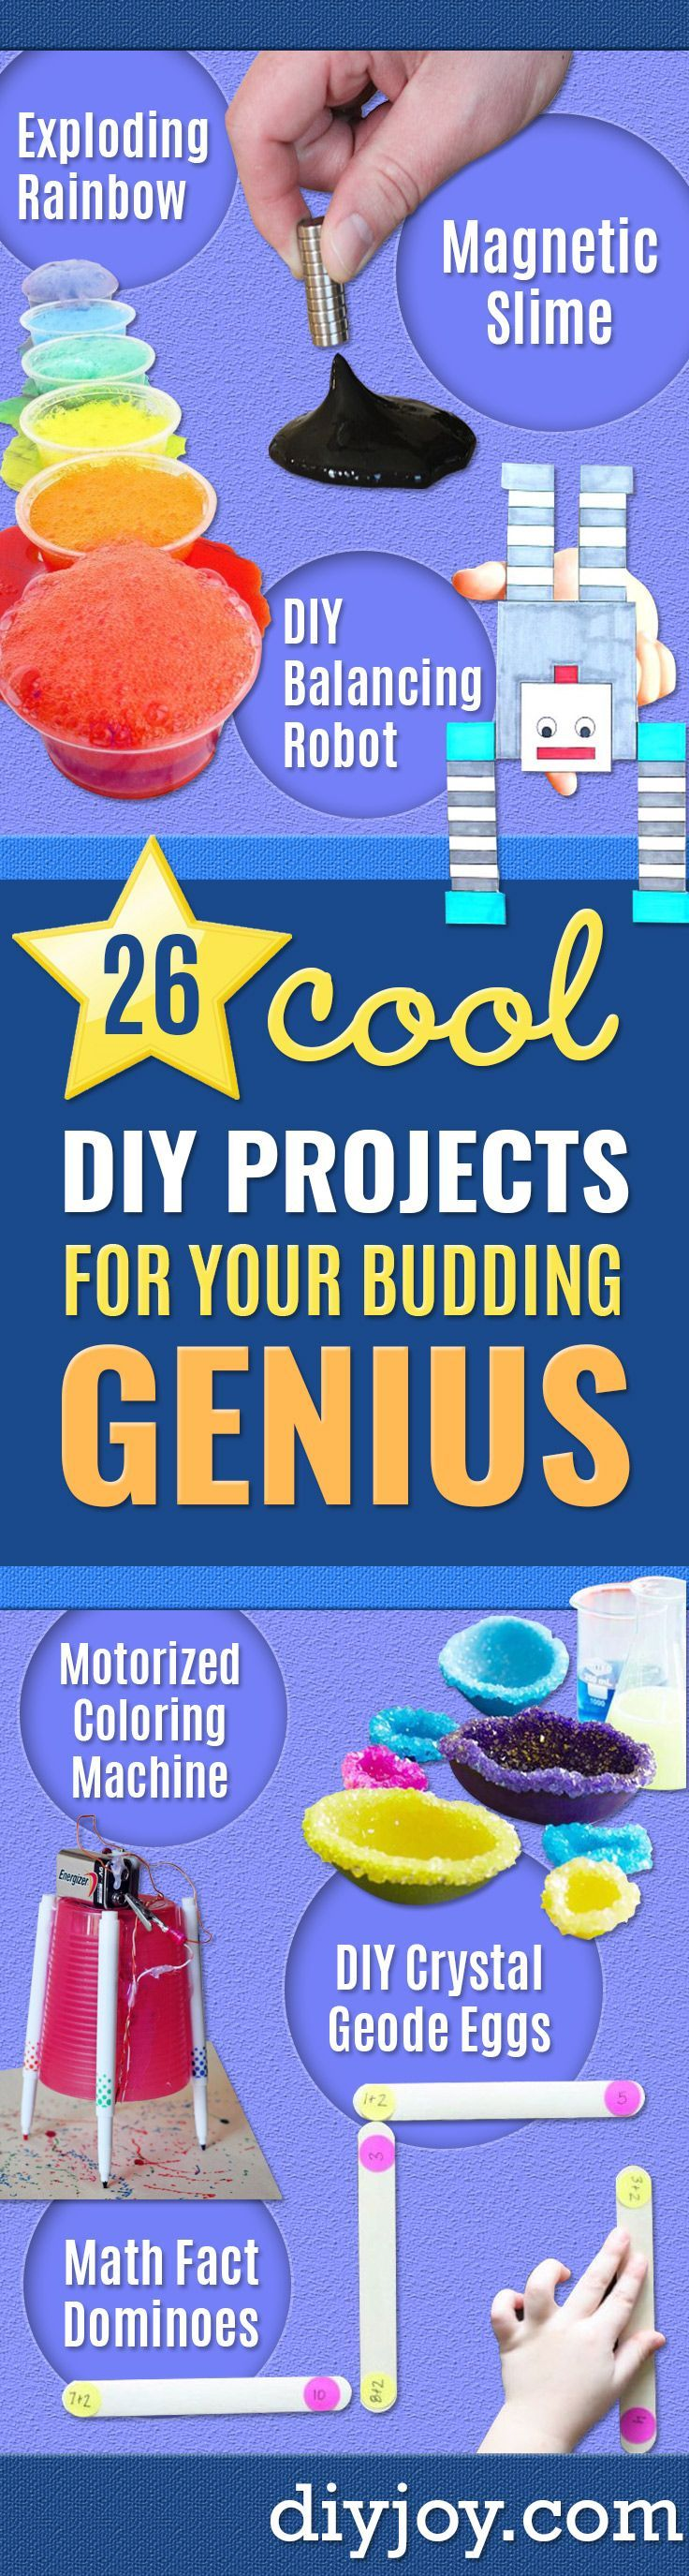 Diy stem and science ideas for kids and teens fun and easy do it diy stem and science ideas for kids and teens fun and easy do it yourself projects and crafts using math electronics engineering concepts and b solutioingenieria Gallery